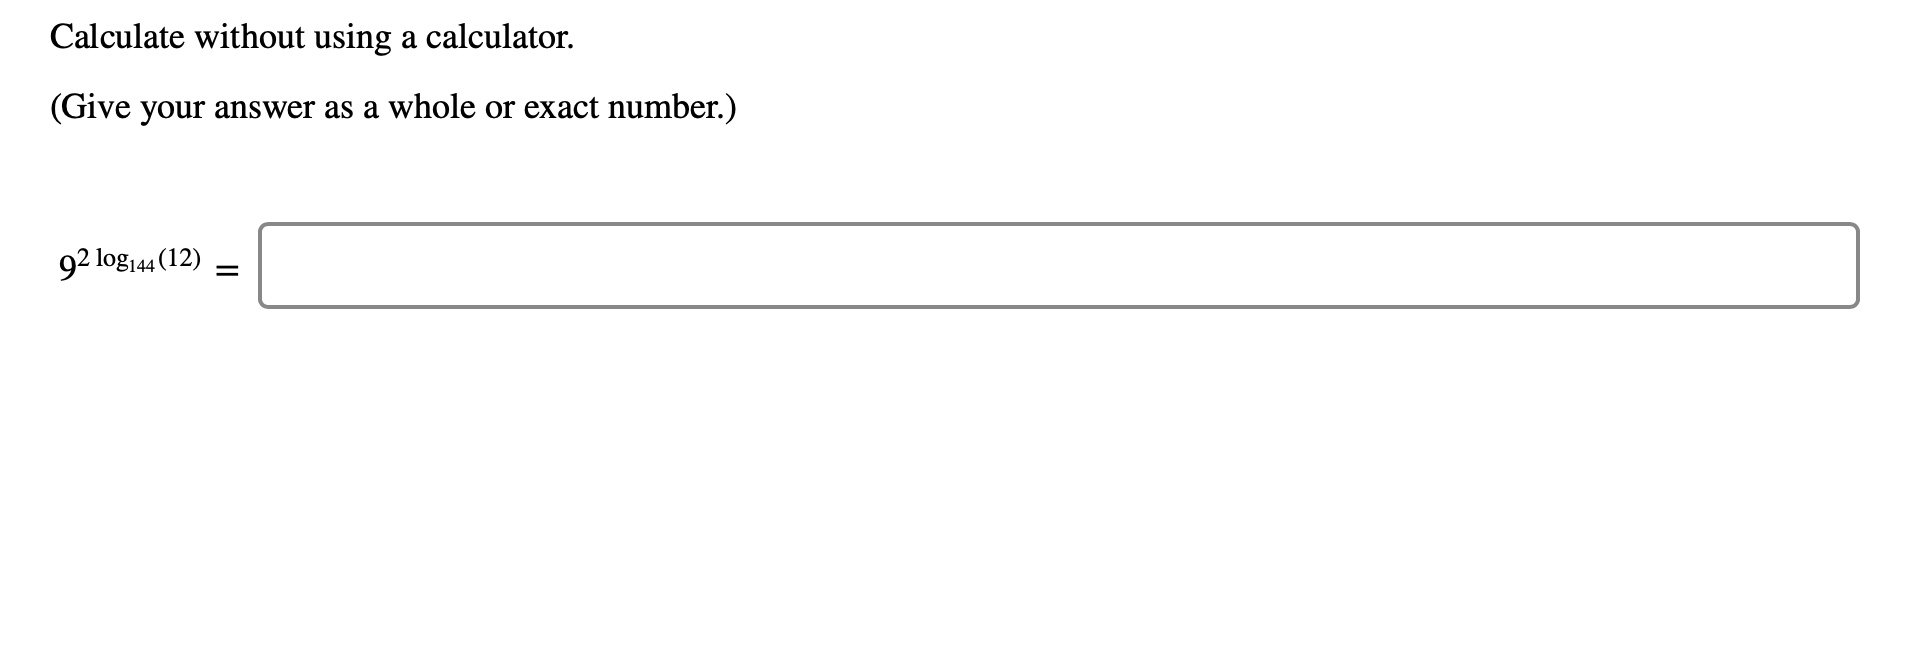 Calculate without using a calculator (Give your answer as a whole or exact number.) 92 log144 (12)